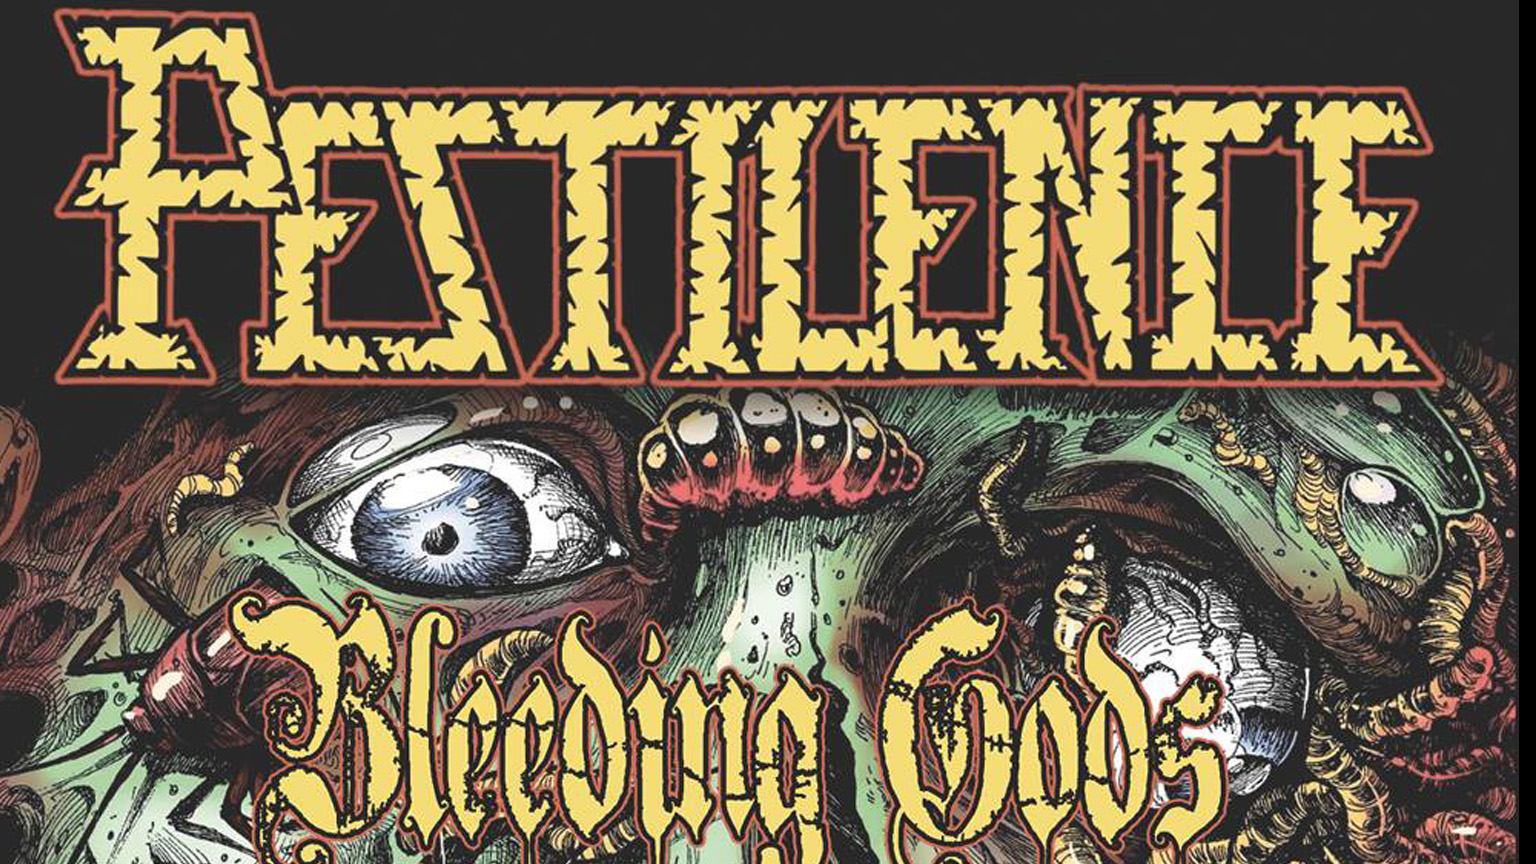 28.02.2019 – Pestilence 'Consuming Impulse set' + Bleeding Gods